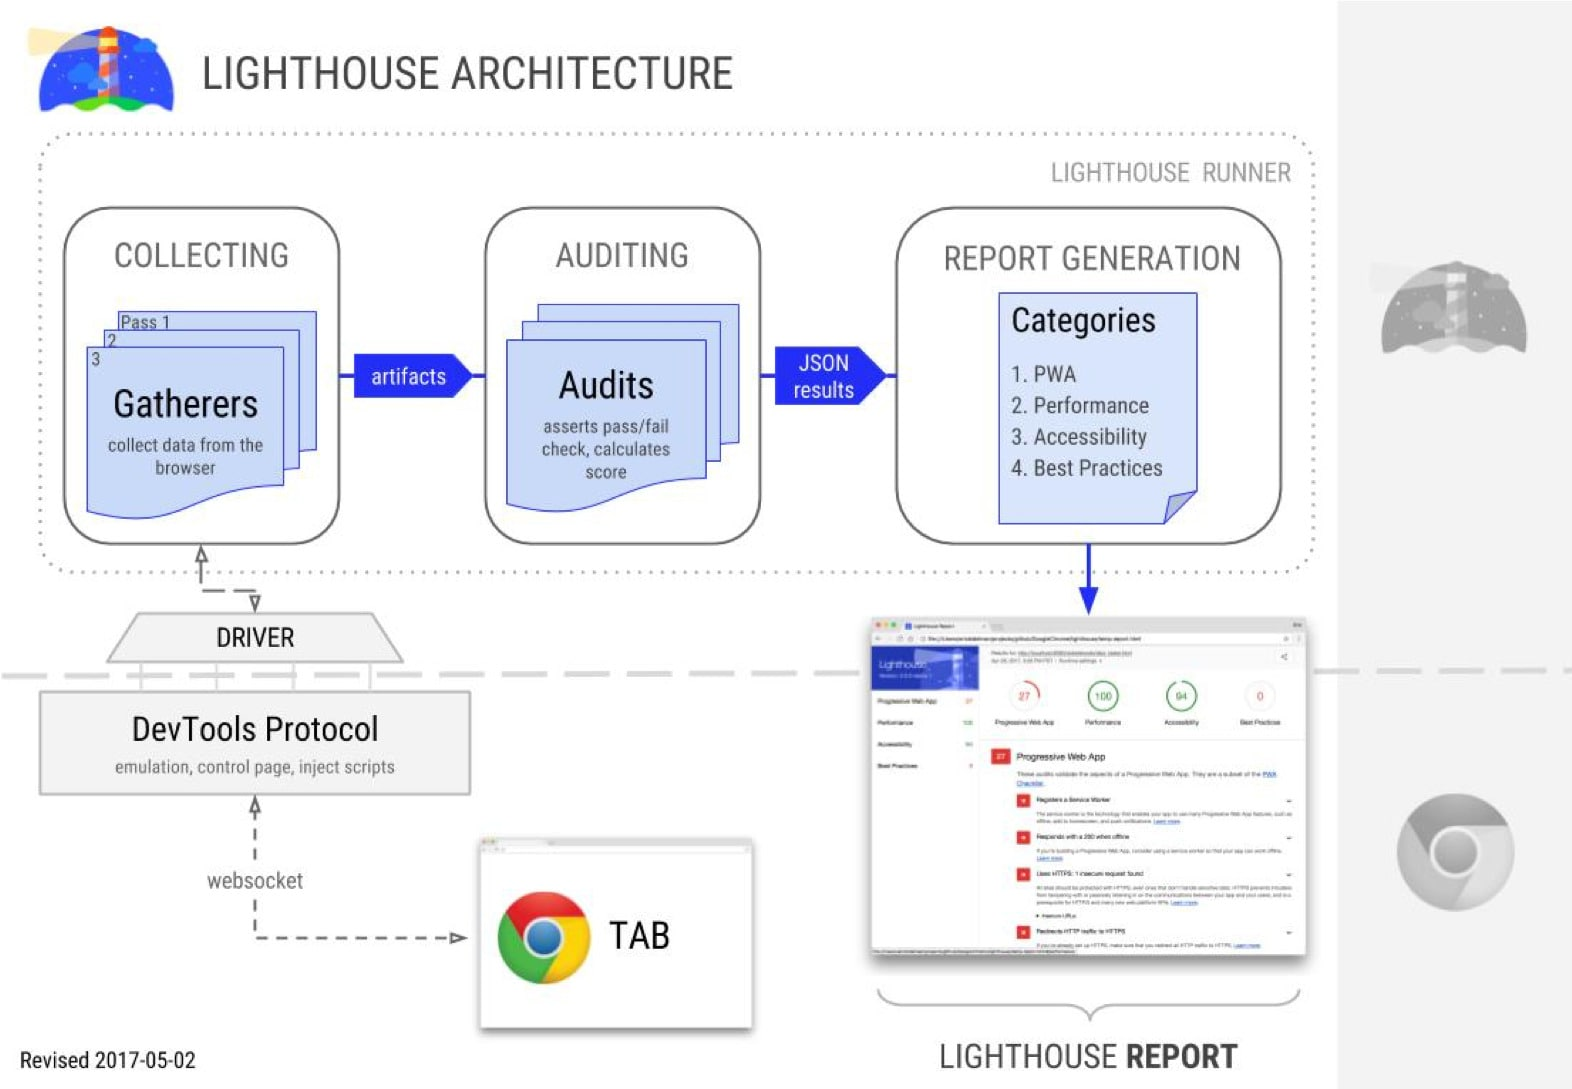 A screenshot of the Lighthouse architecture